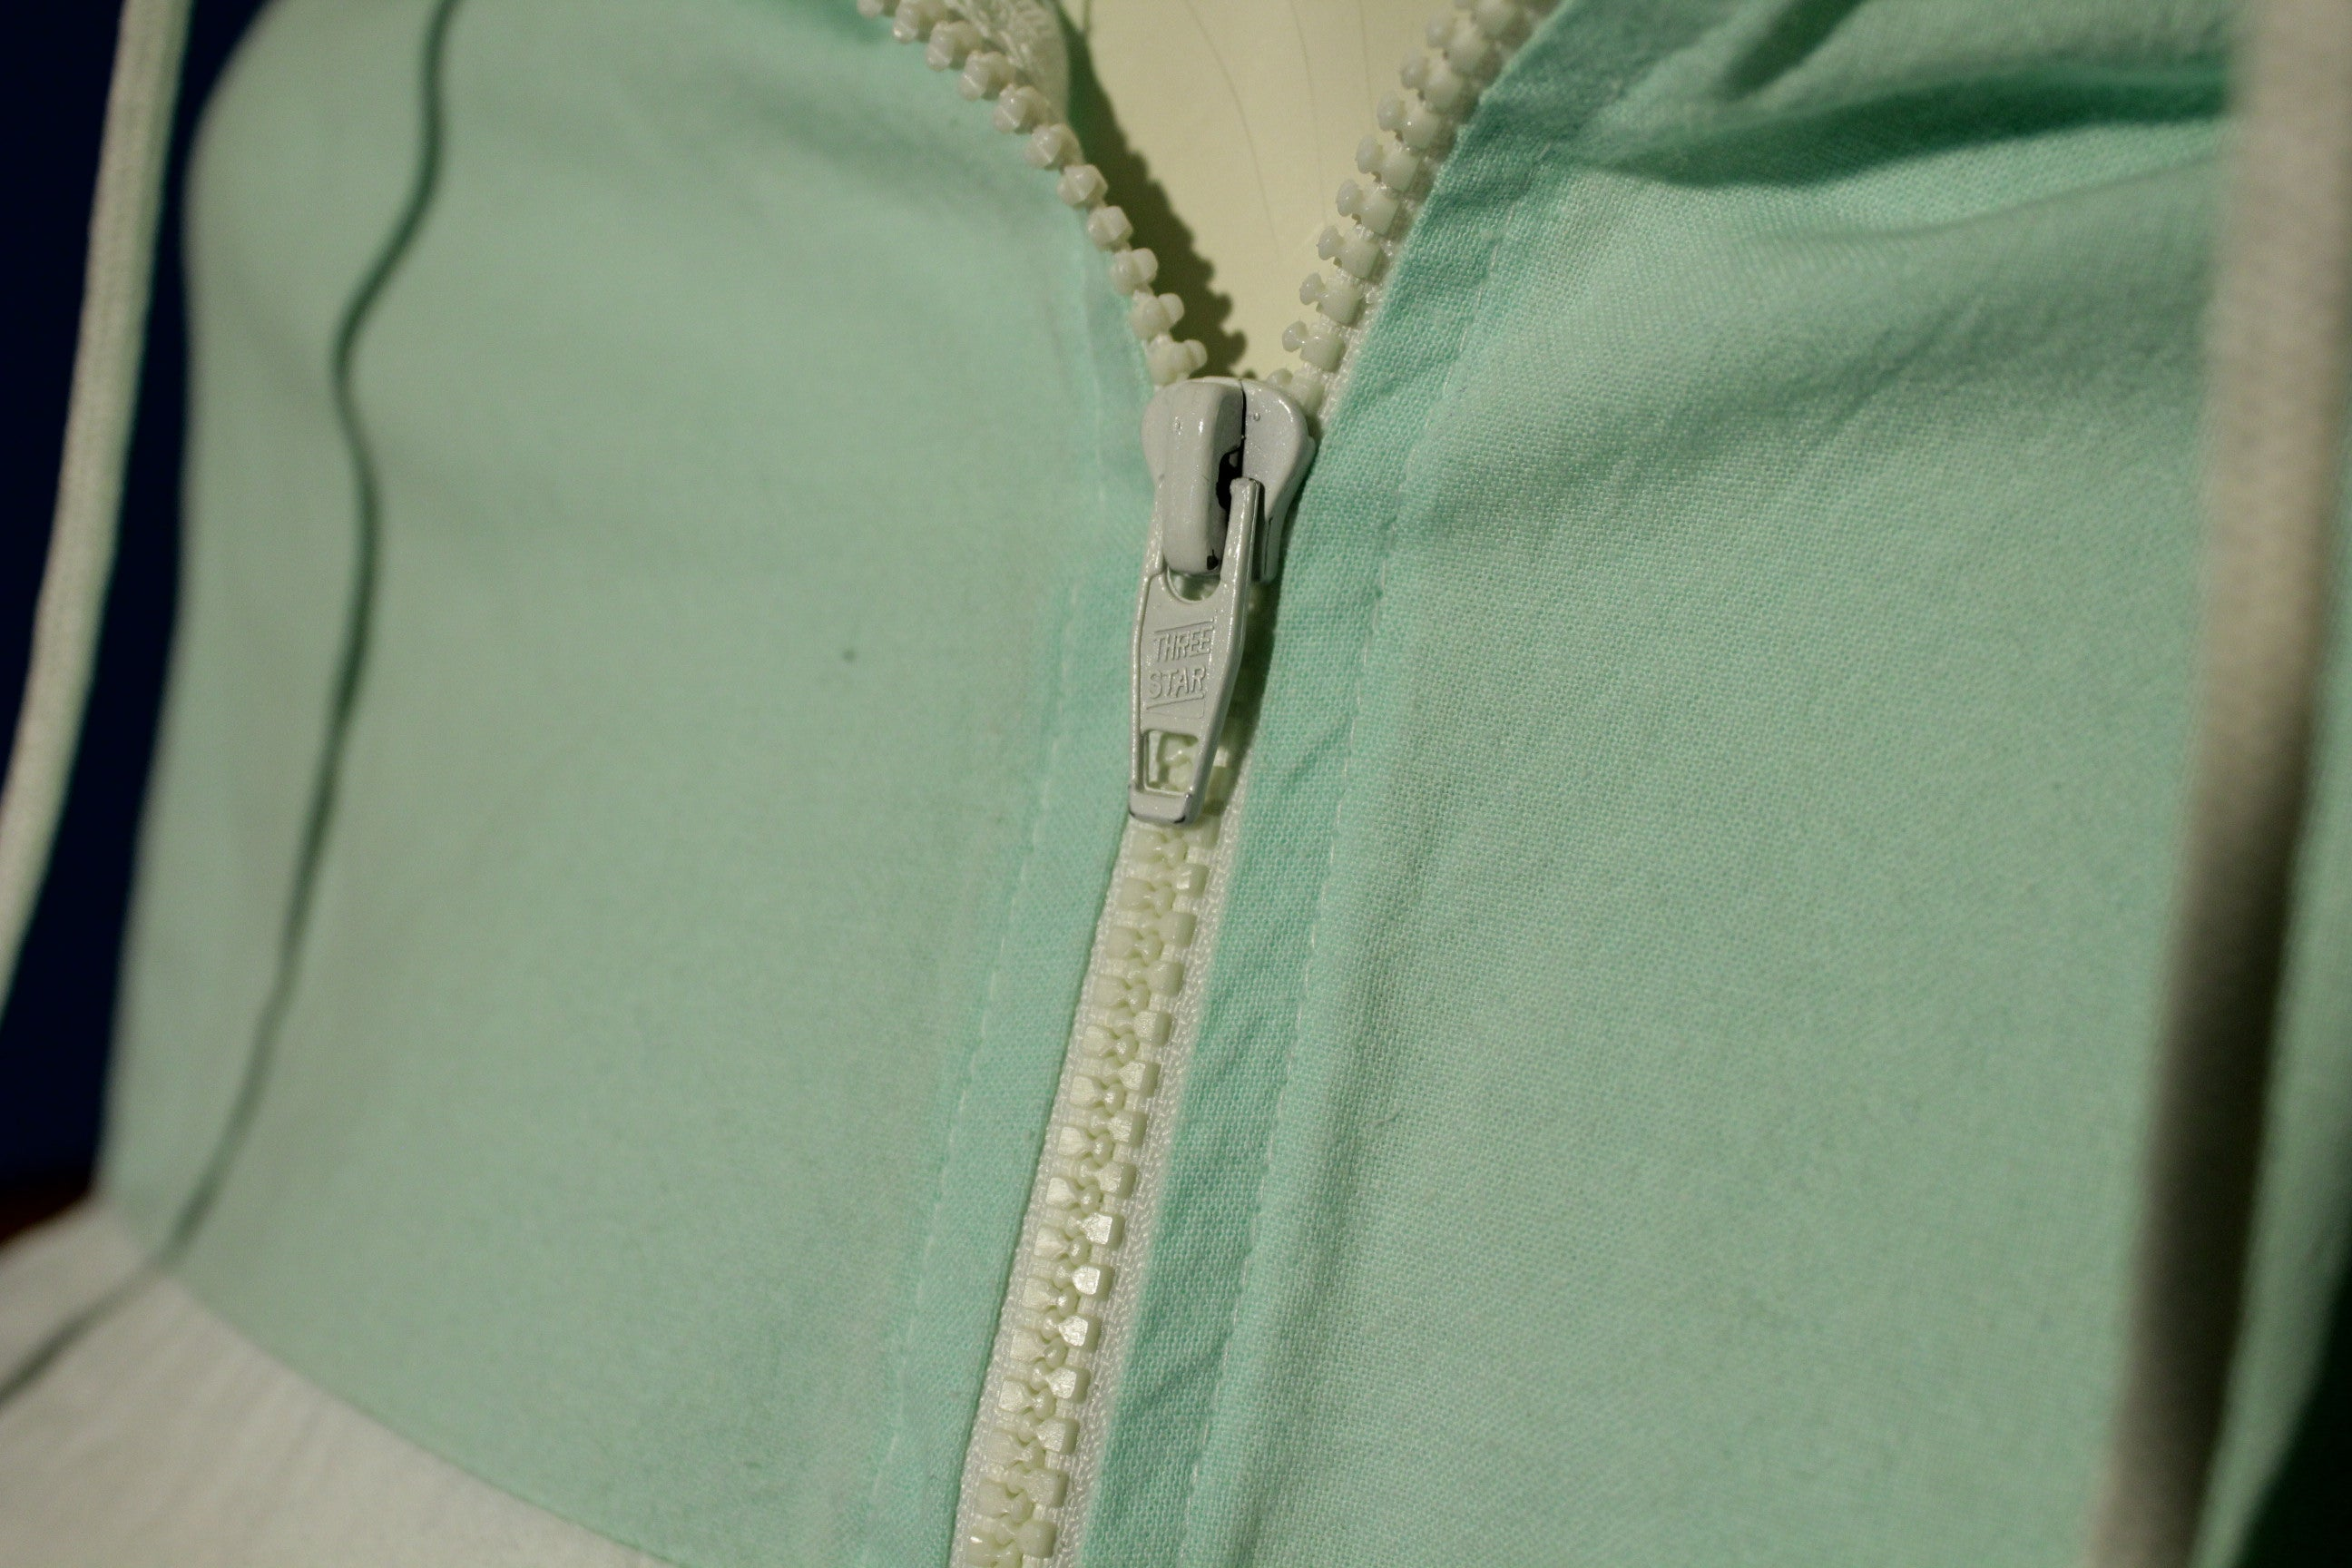 Mint Green Vintage Montana Windbreaker Half Zip 90's Pullover w/ Drawstrings.